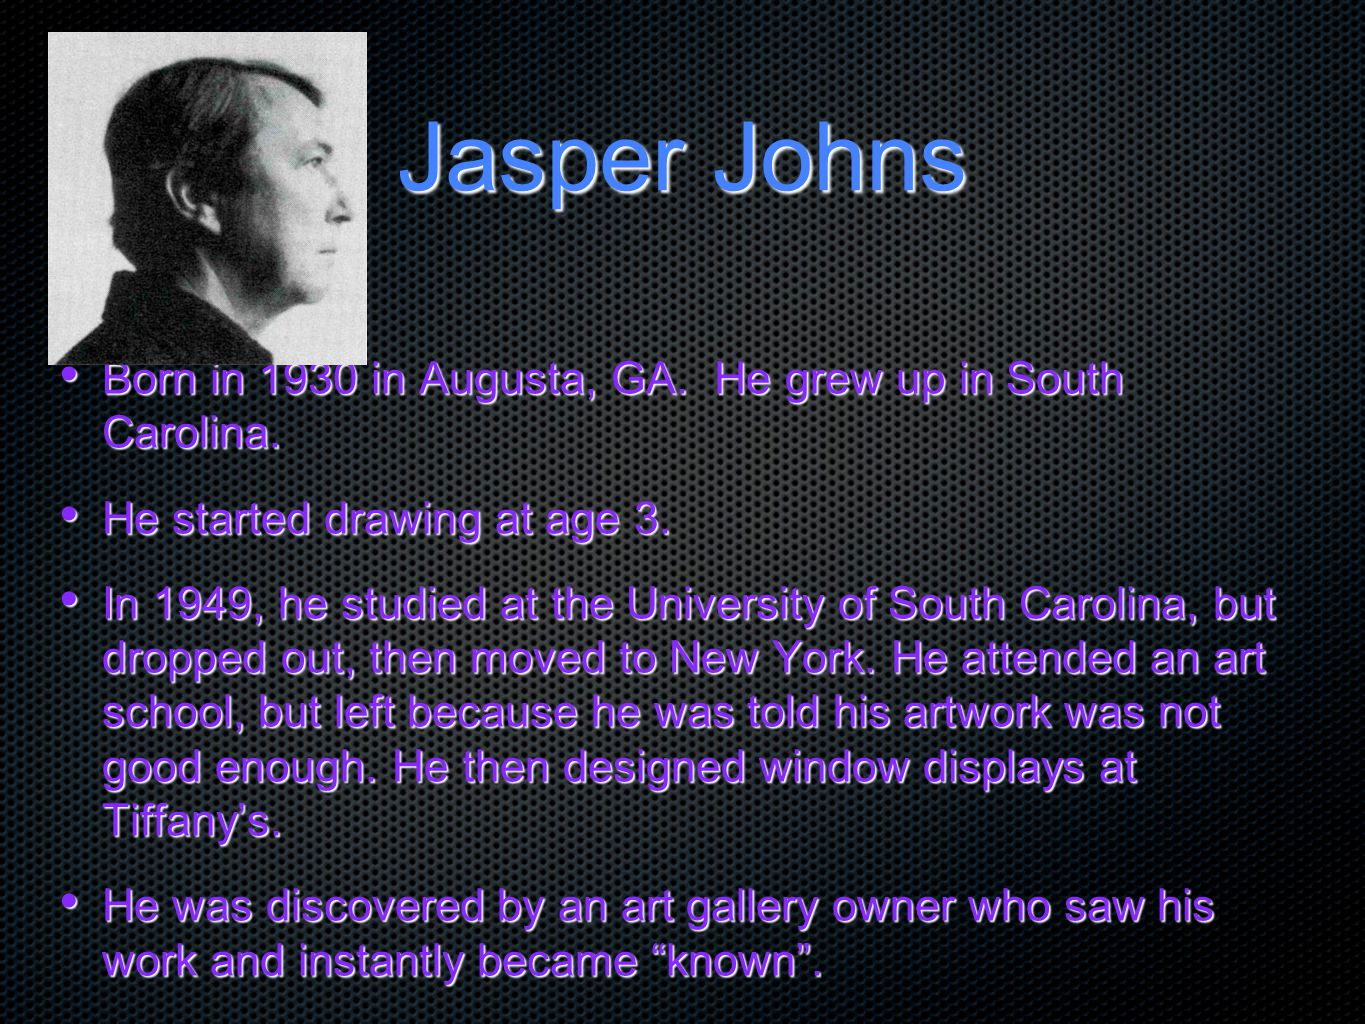 Jasper Johns: One of founders of Pop Art Three Flags was painted in 1958.